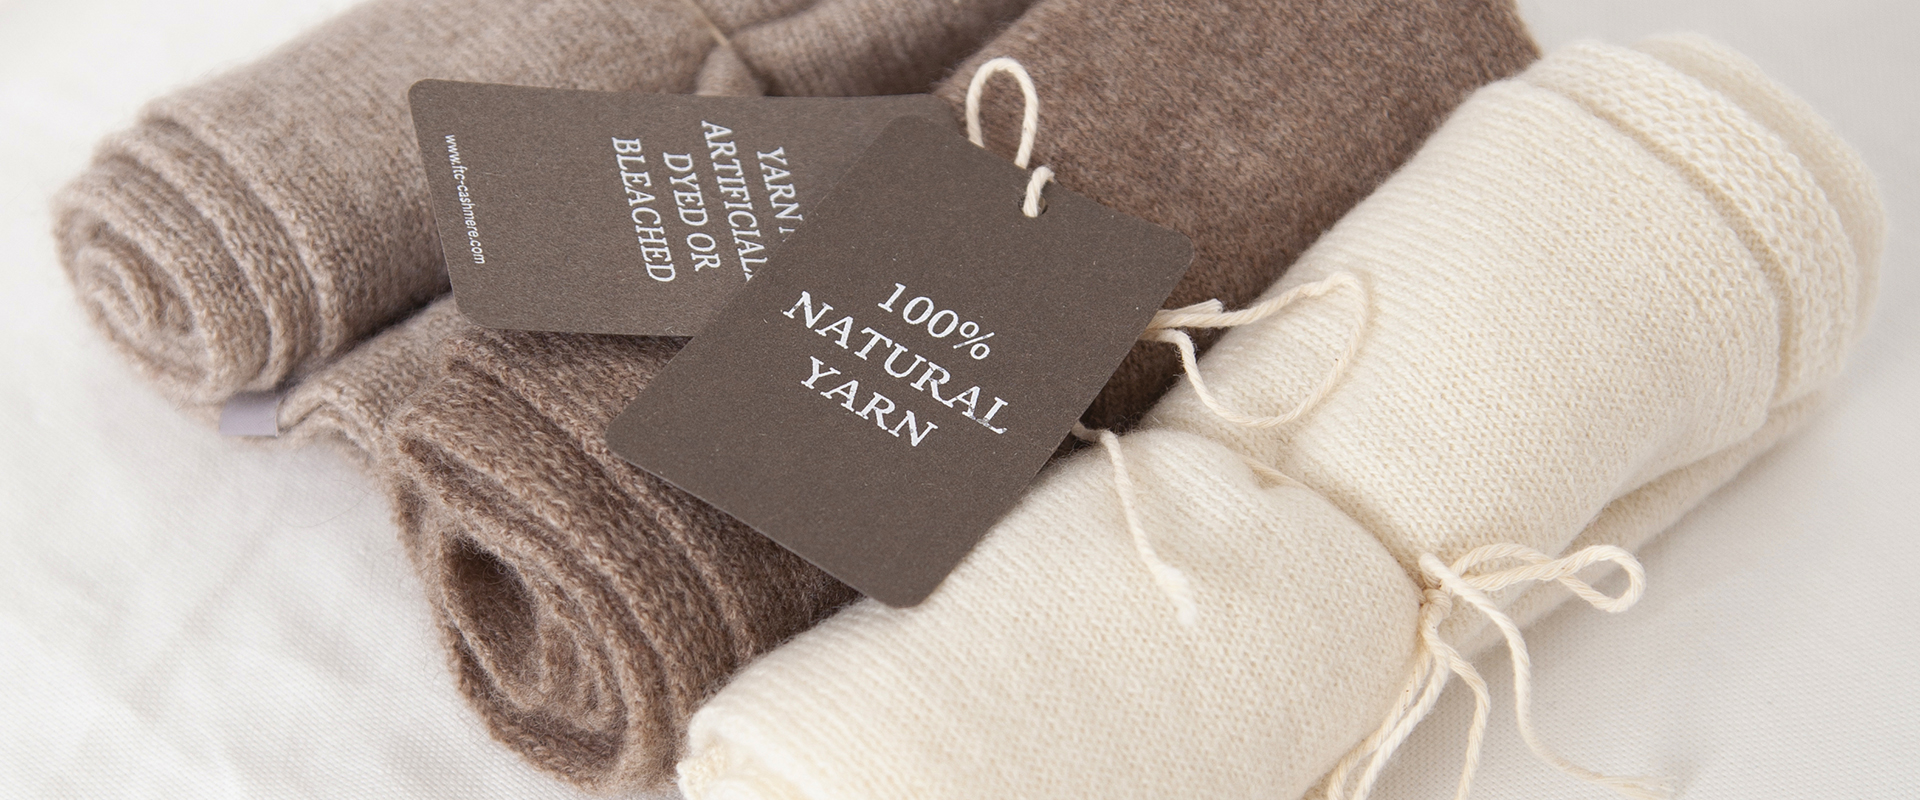 ftc-cashmere_about_lines_natural-yarn_undyed_unbleached_natural